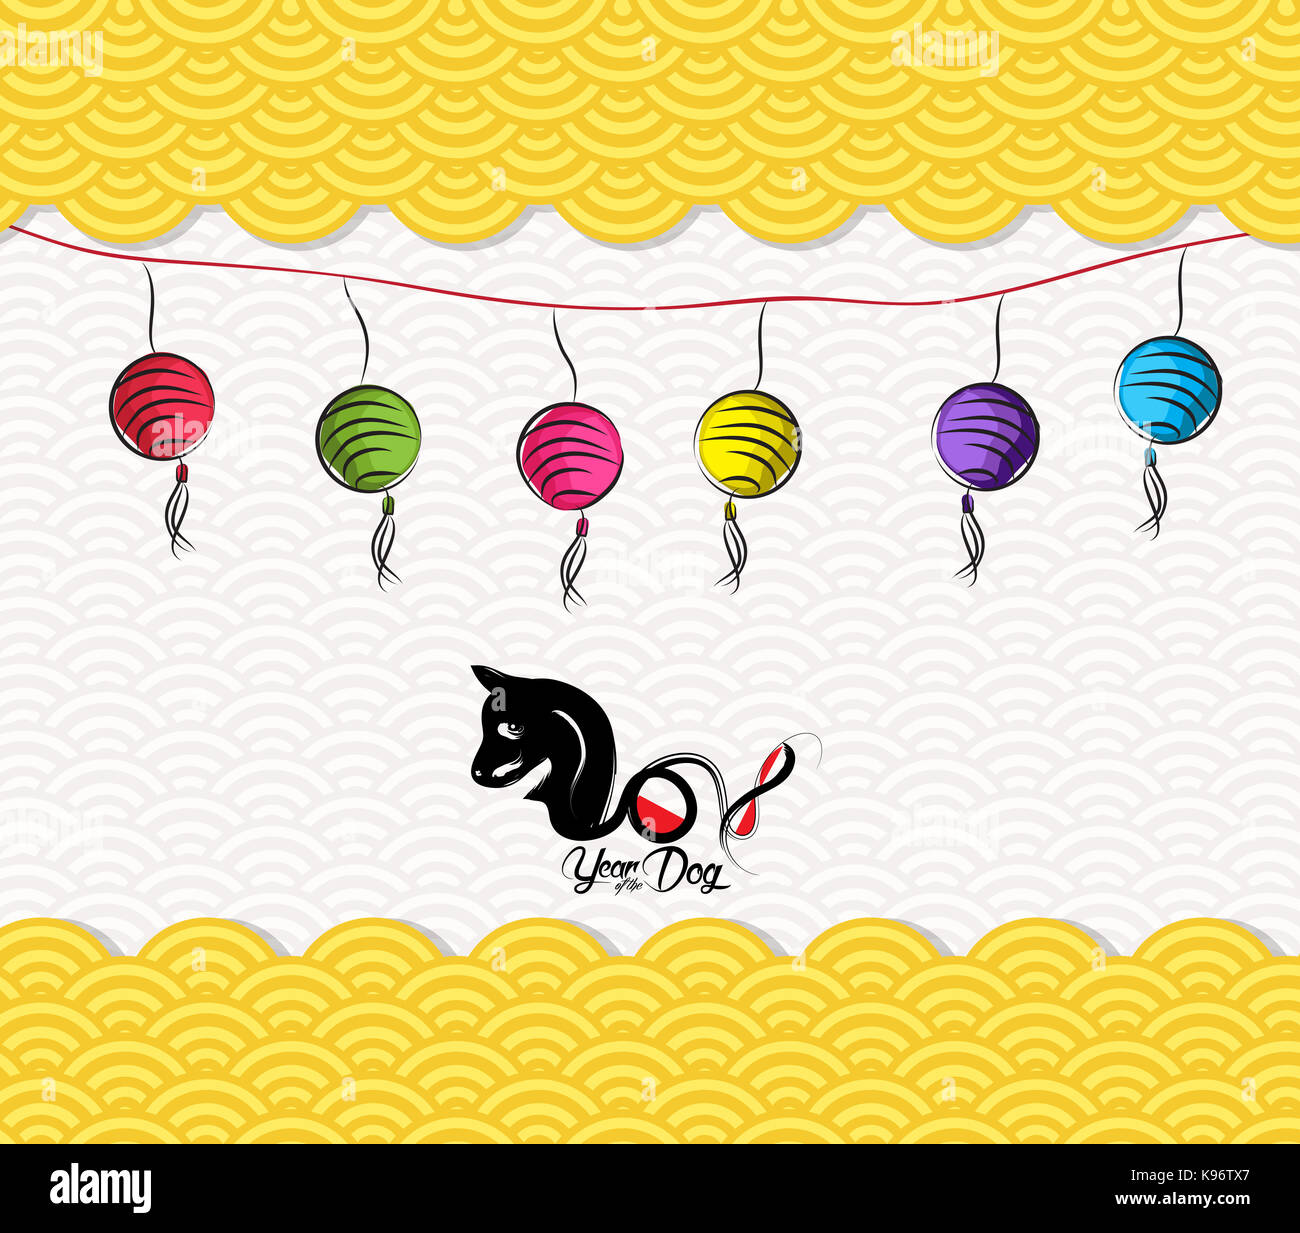 chinese new year 2018 lantern pattern background year of the dog